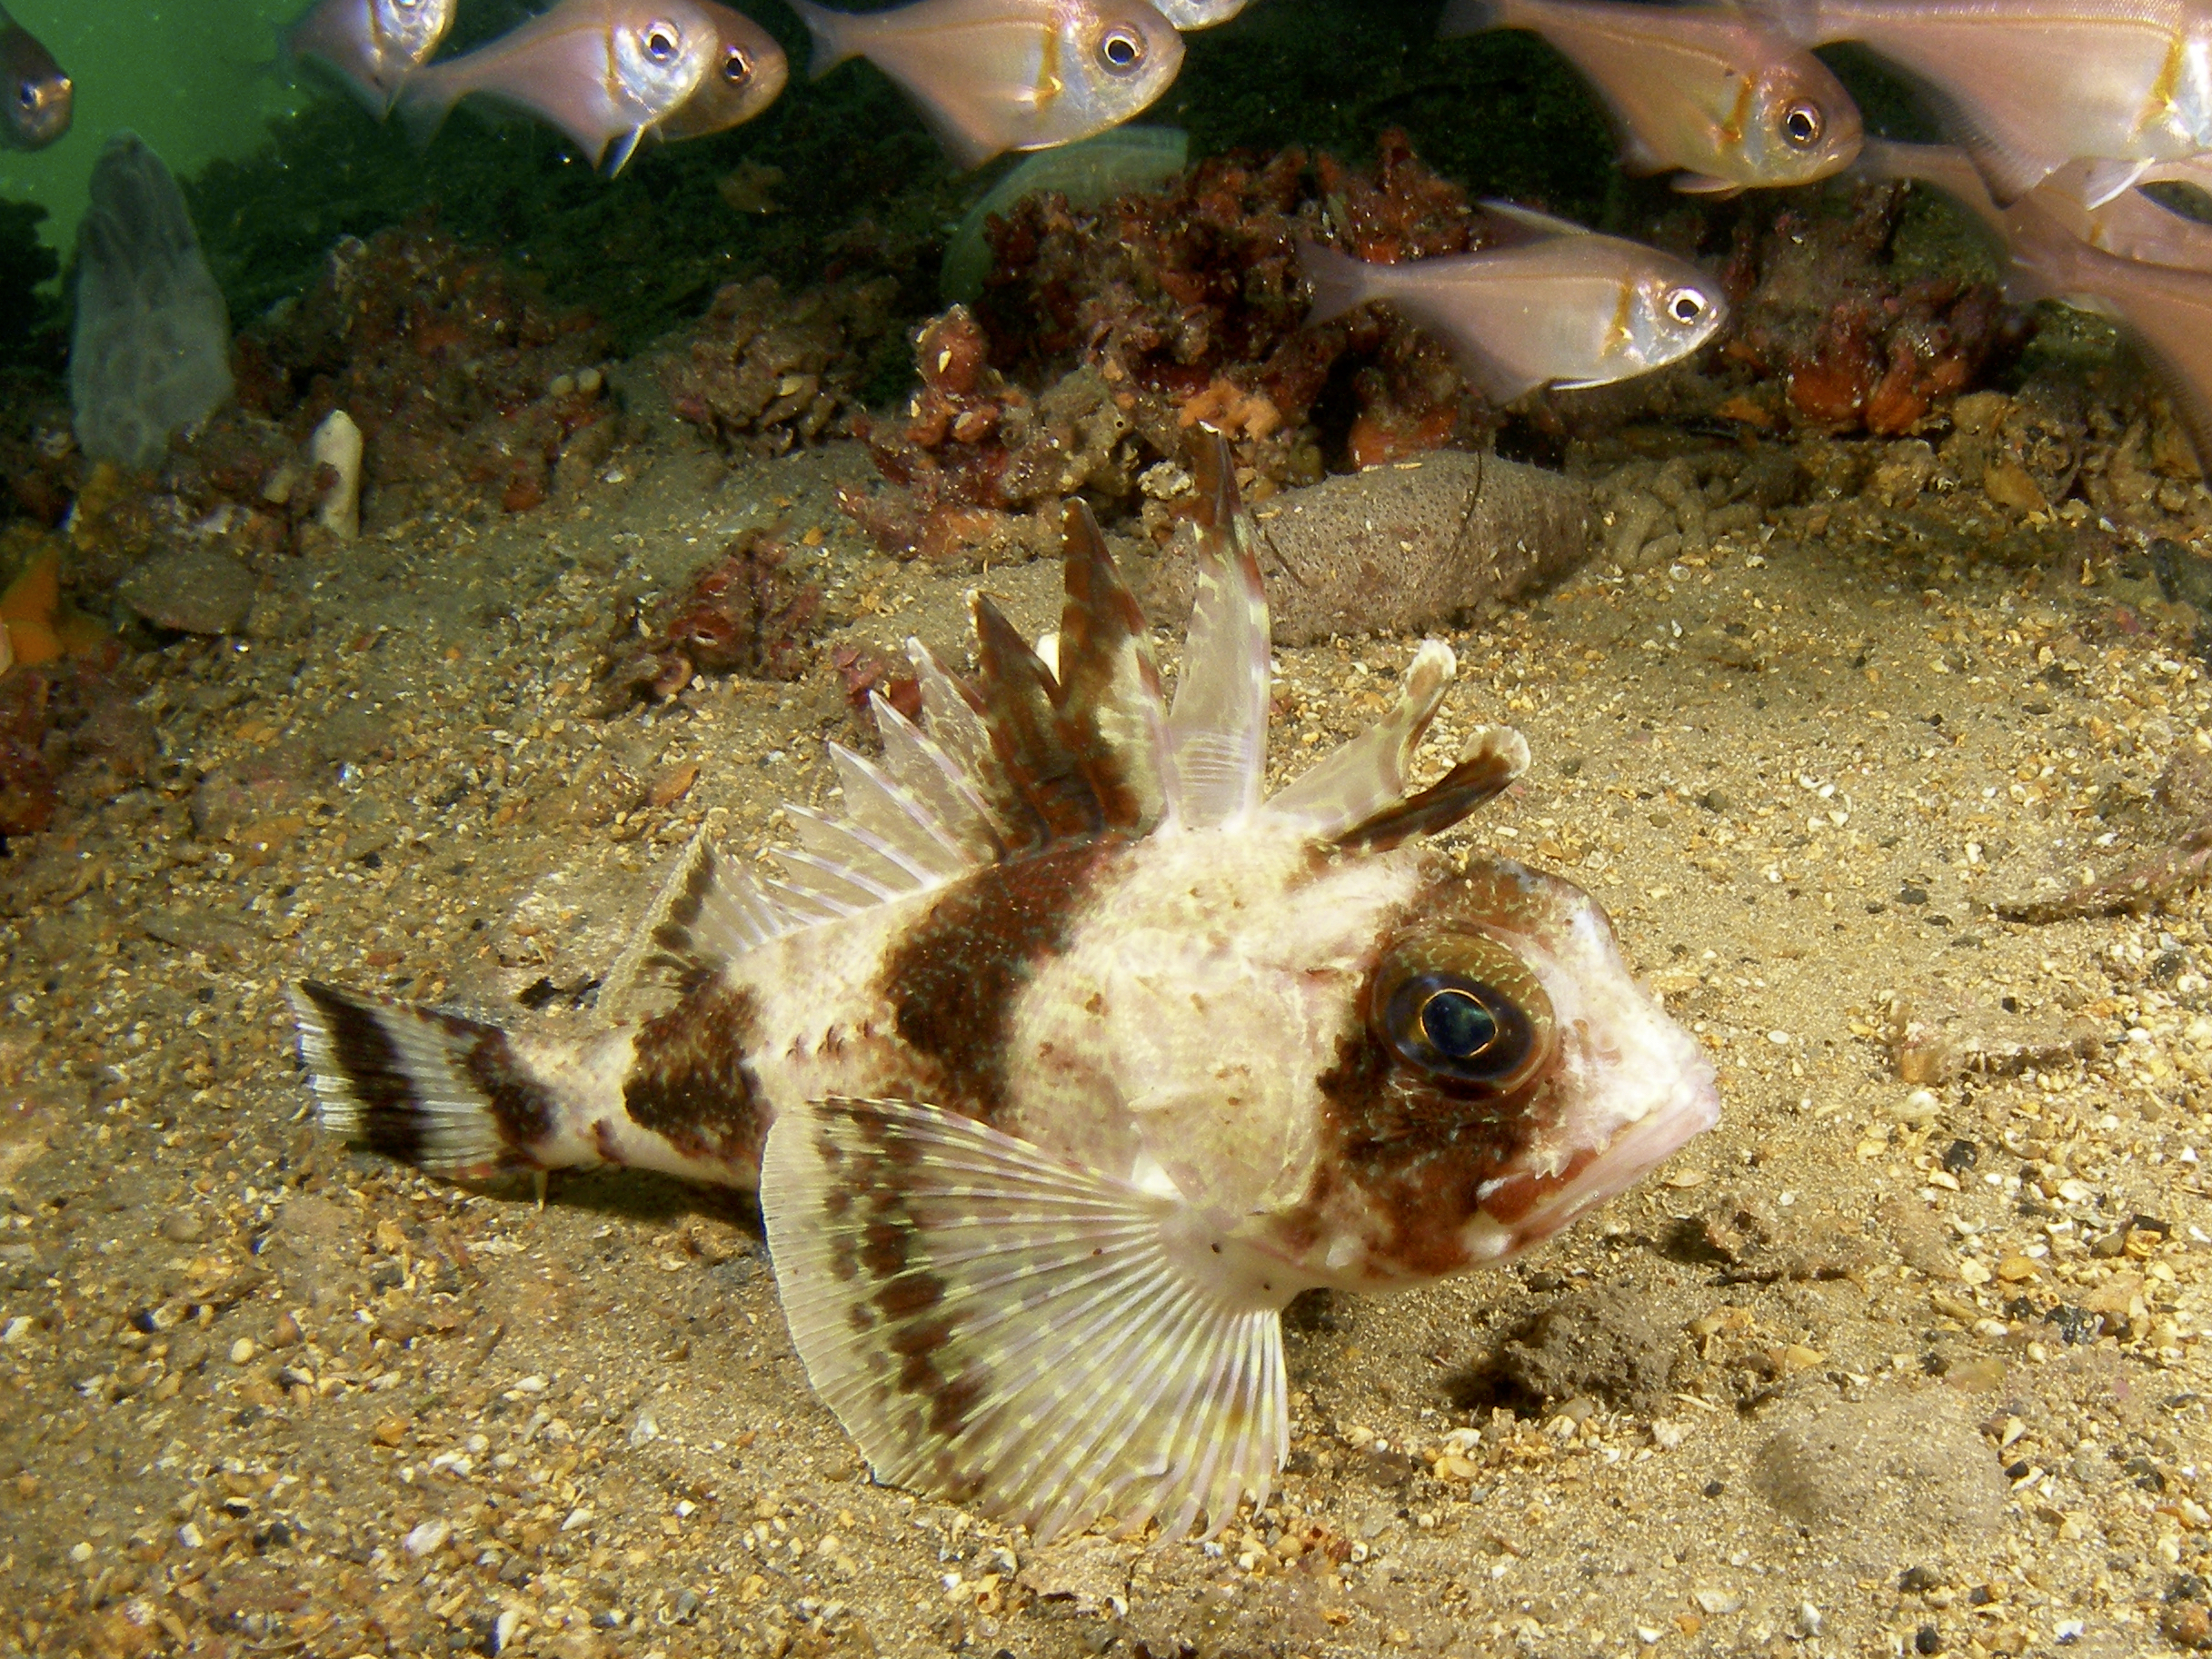 Common gurnard perch (Neosebastes scorpaenoides)